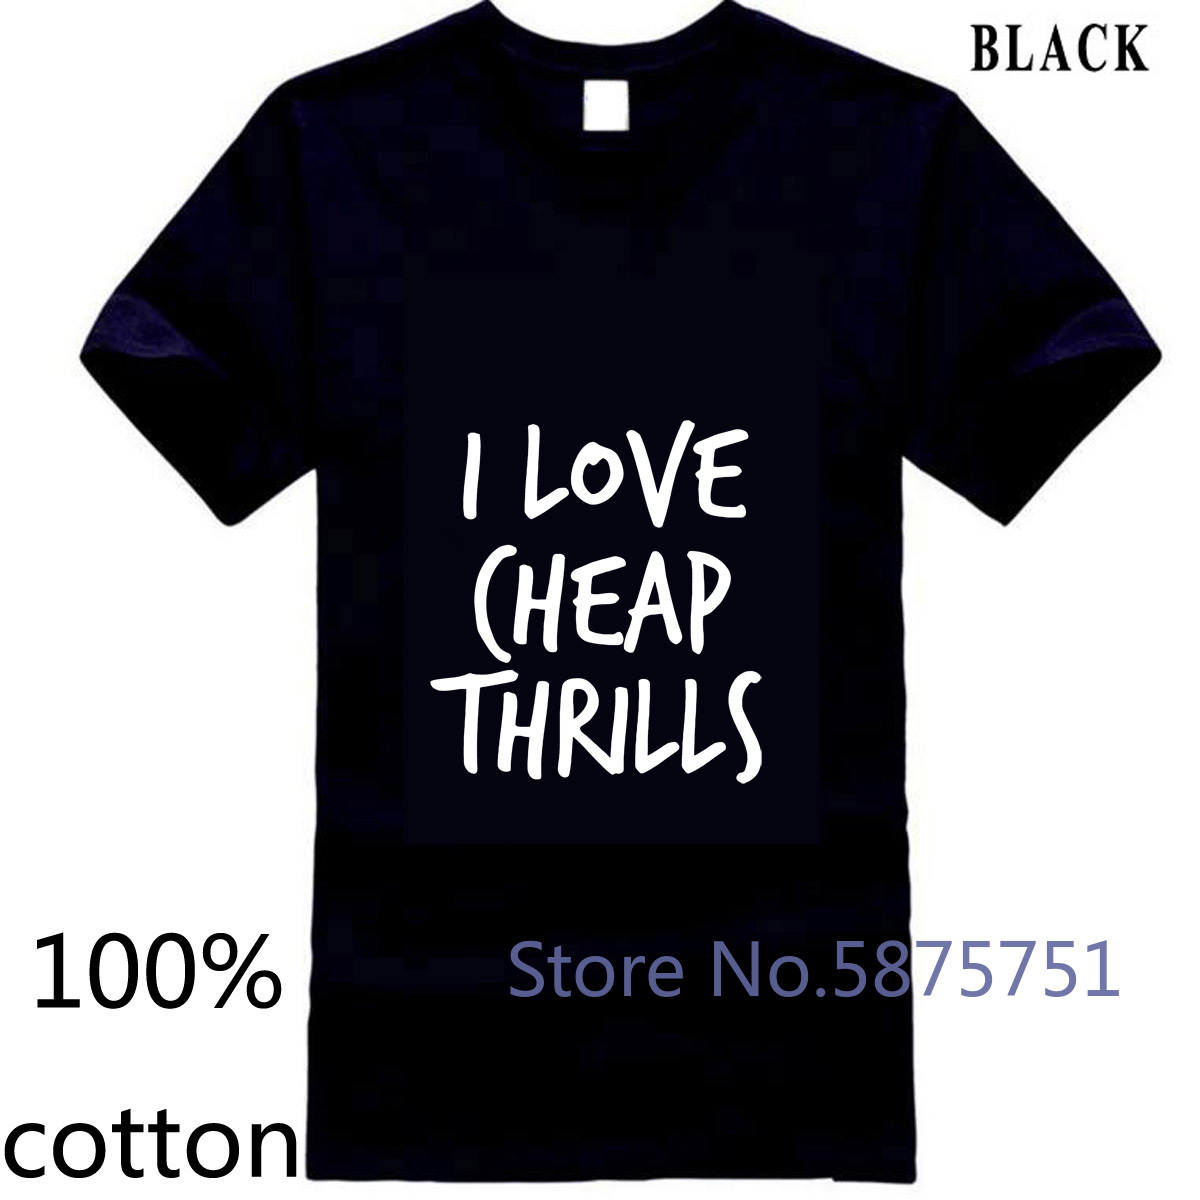 I LOVE CHEAP THRILLS Sia Music Unisex <font><b>Sean</b></font> Party Hard Paul Men men's <font><b>t</b></font> <font><b>shirt</b></font> <font><b>t</b></font>-<font><b>shirt</b></font> tops tees 100% cotton o-neck 3XL 4XL image